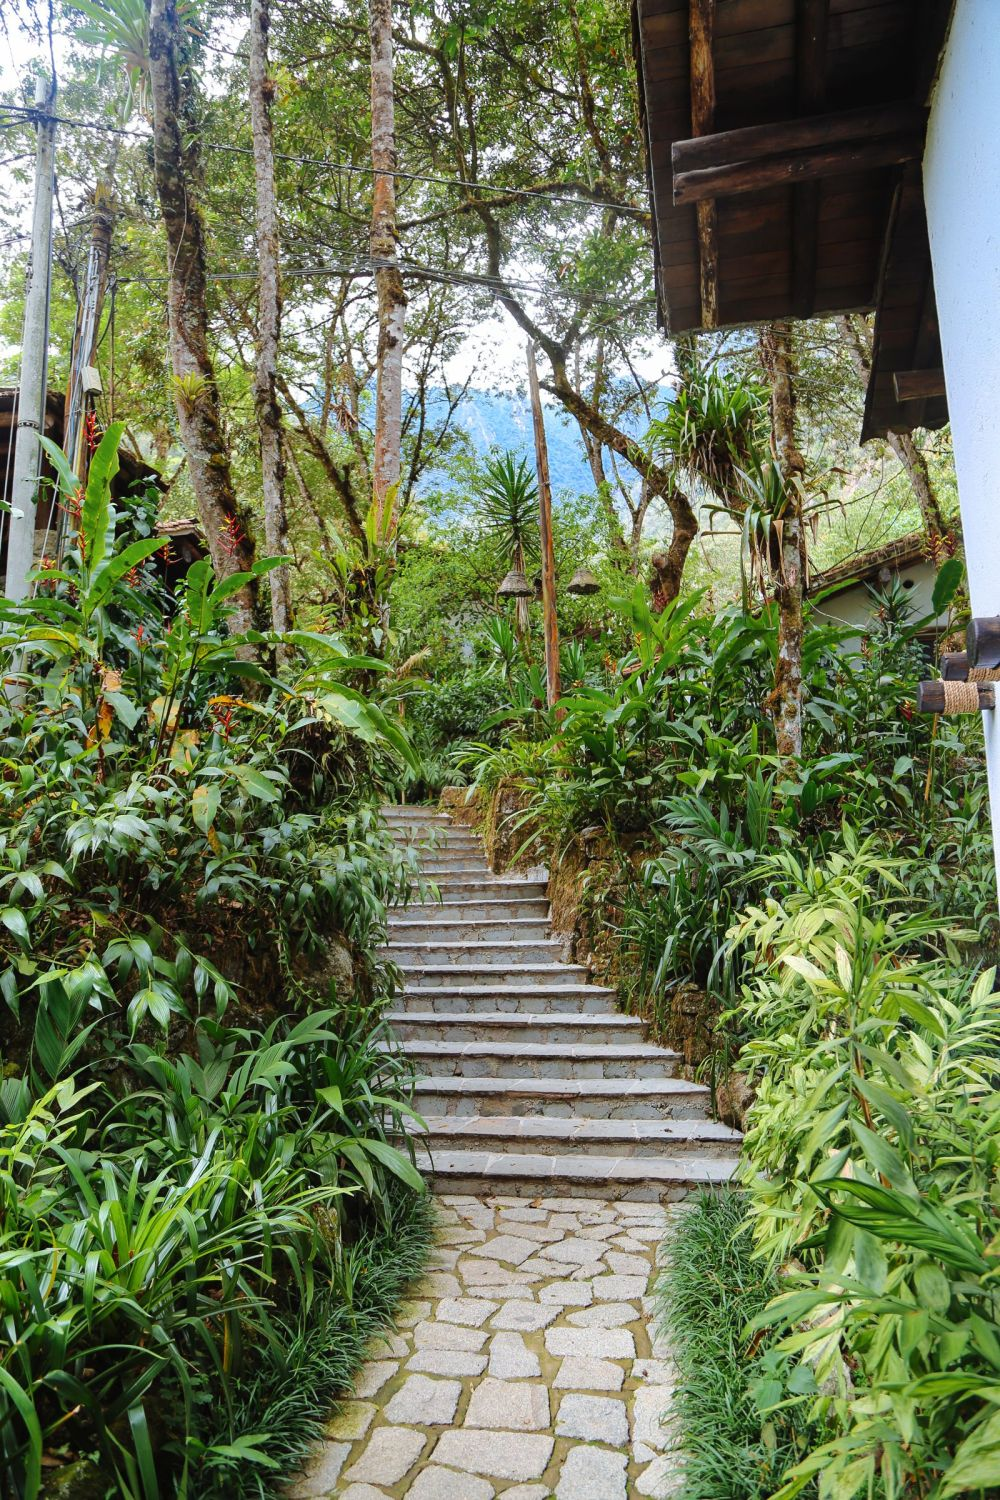 Where To Stay (And What To Do) In Aguas Caliente - The Entry Point To Machu Picchu, Peru (11)